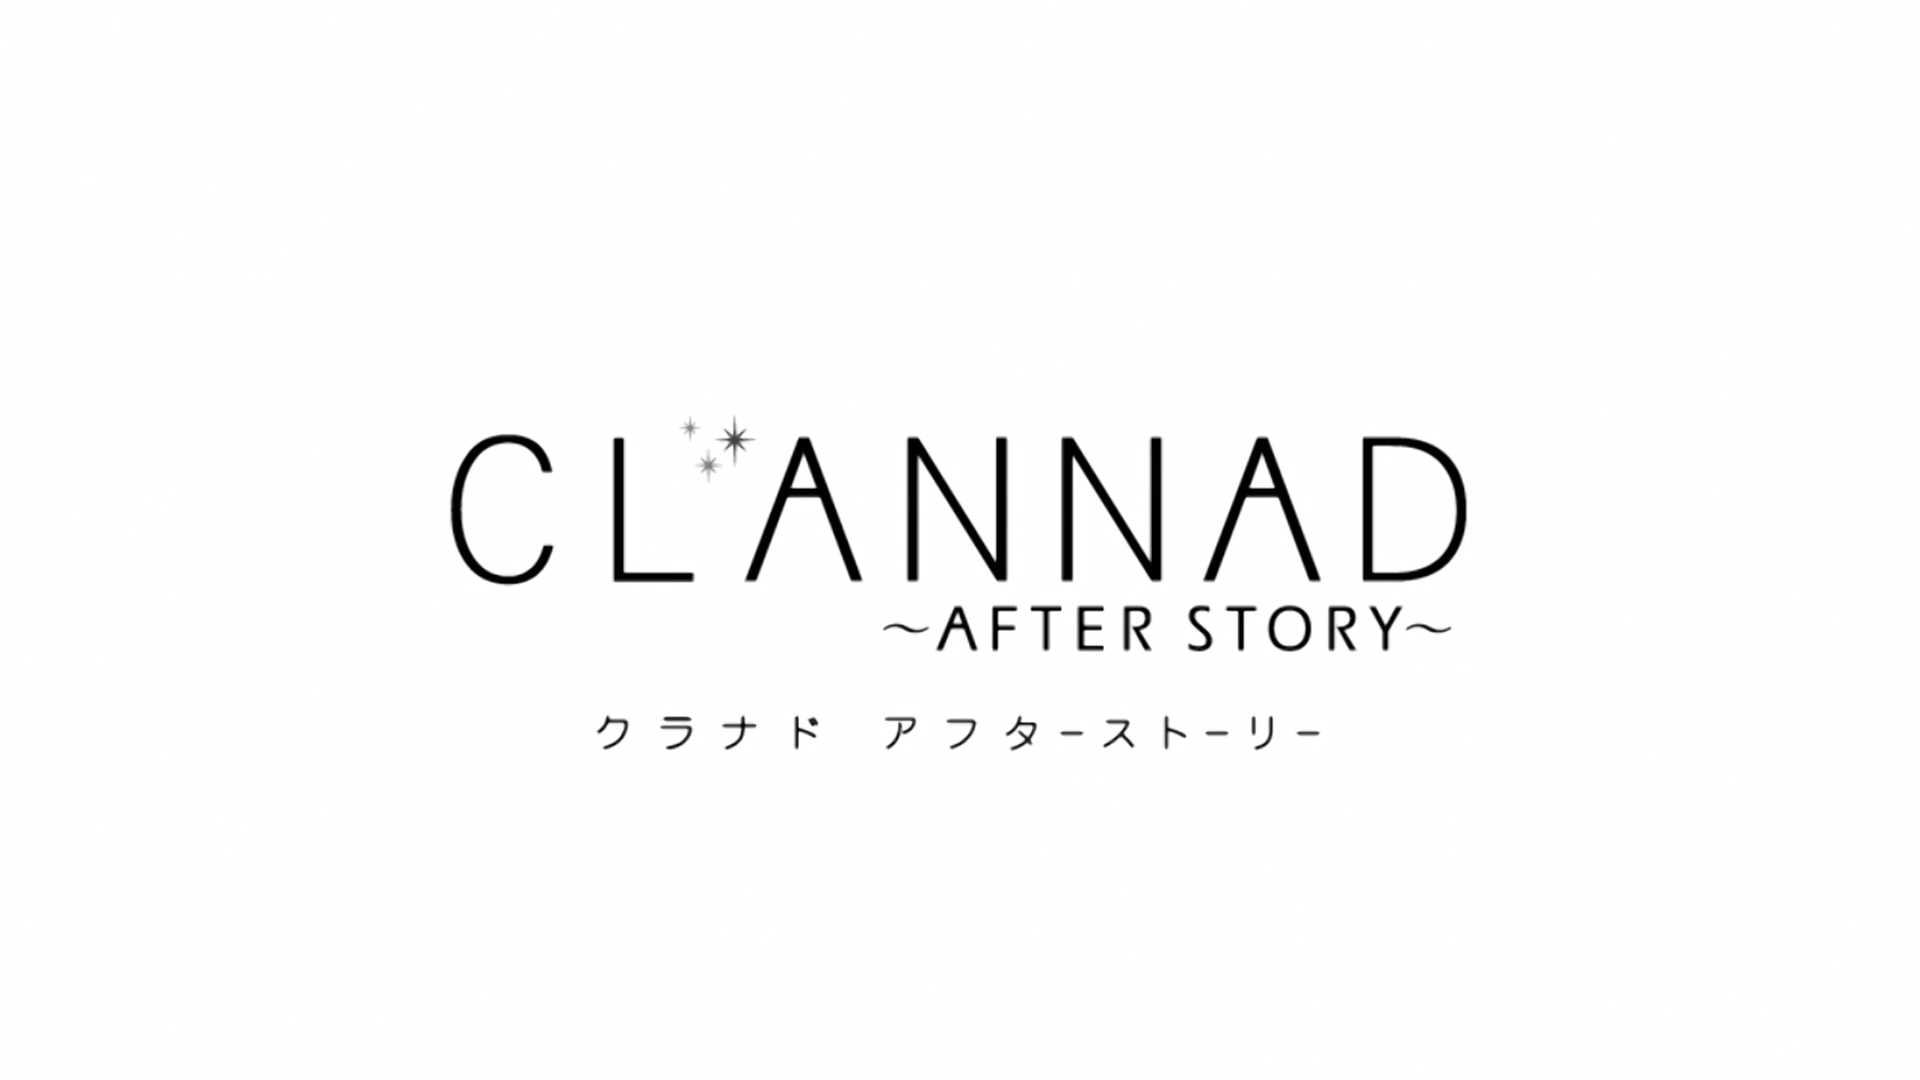 Clannad After Story (BD) – New Batches